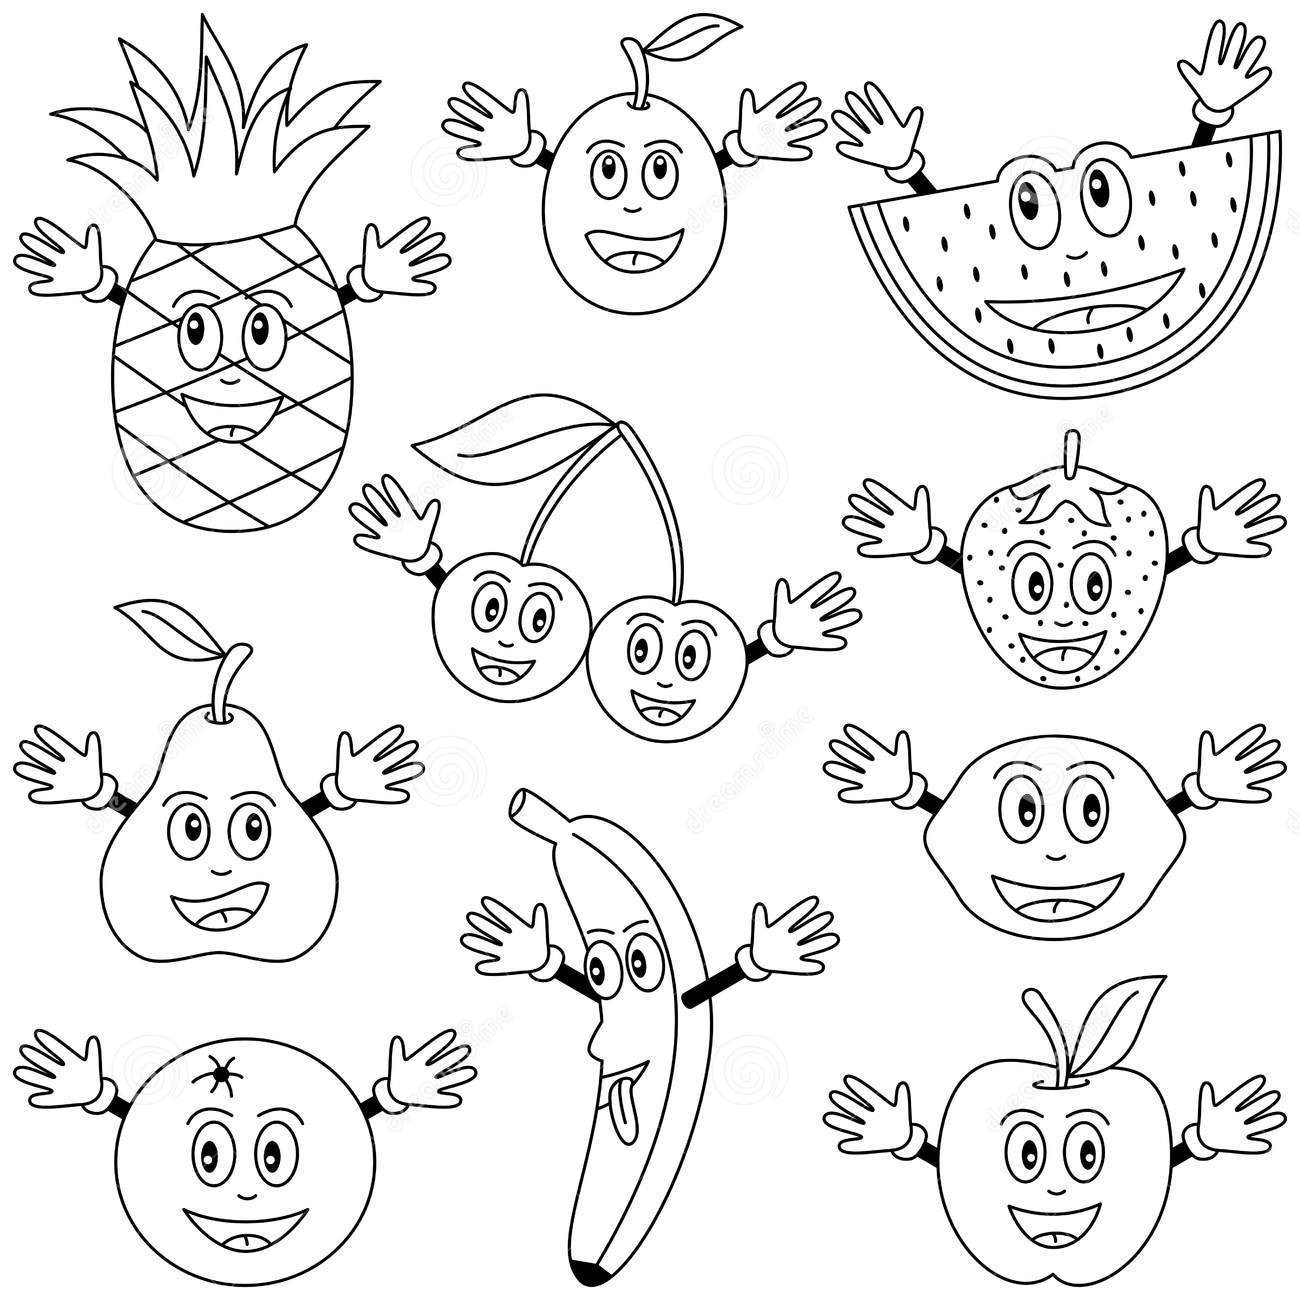 Cartoon Apple Coloring Pages : Fruits vegetables crafts and worksheets for preschool